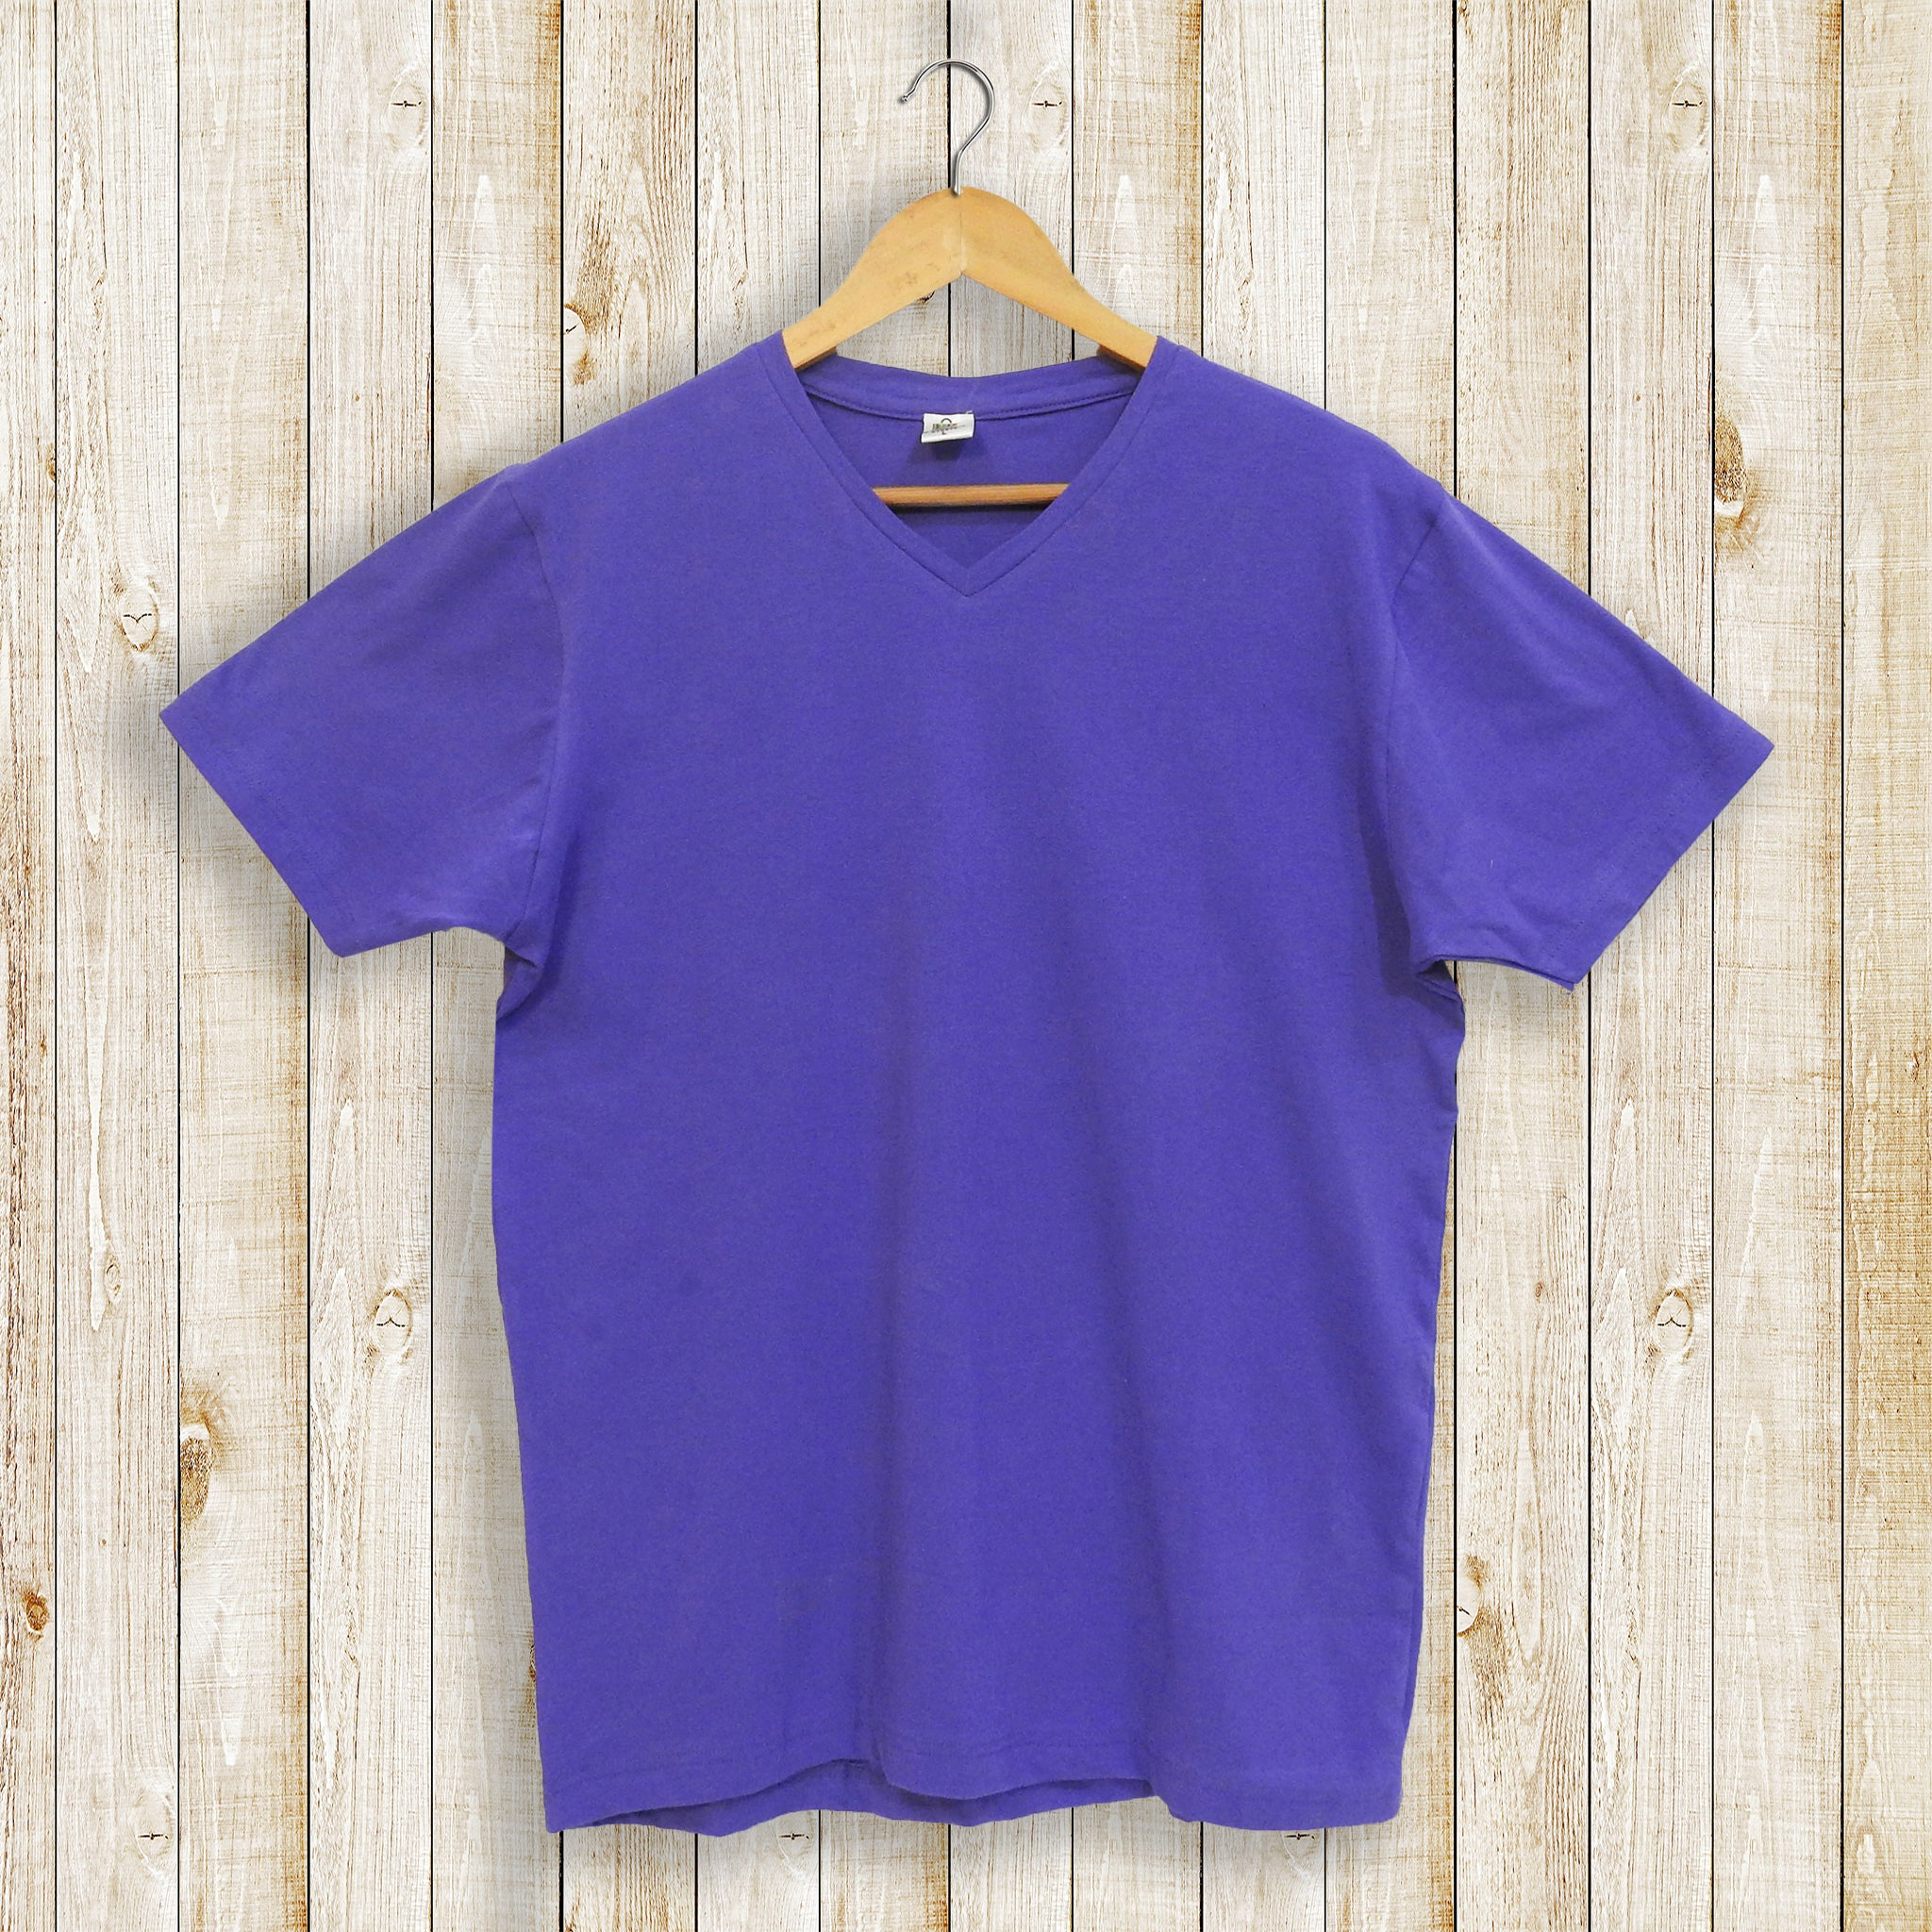 Solid Purple Plain Men's T-shirt